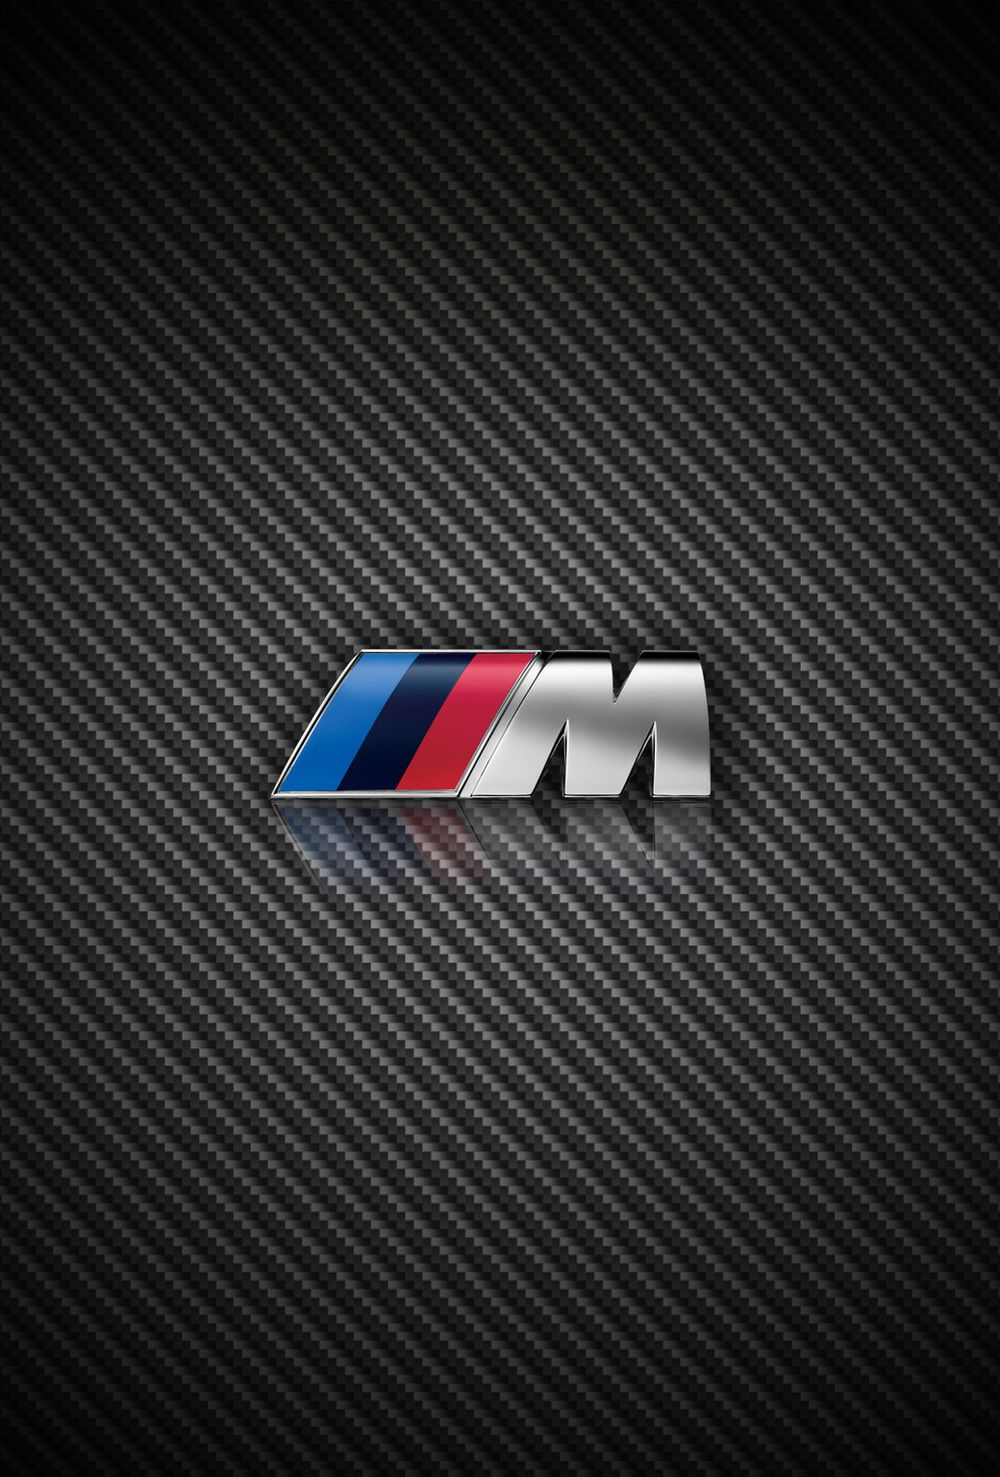 bmw m logo wallpaper wallpapersafari. Black Bedroom Furniture Sets. Home Design Ideas